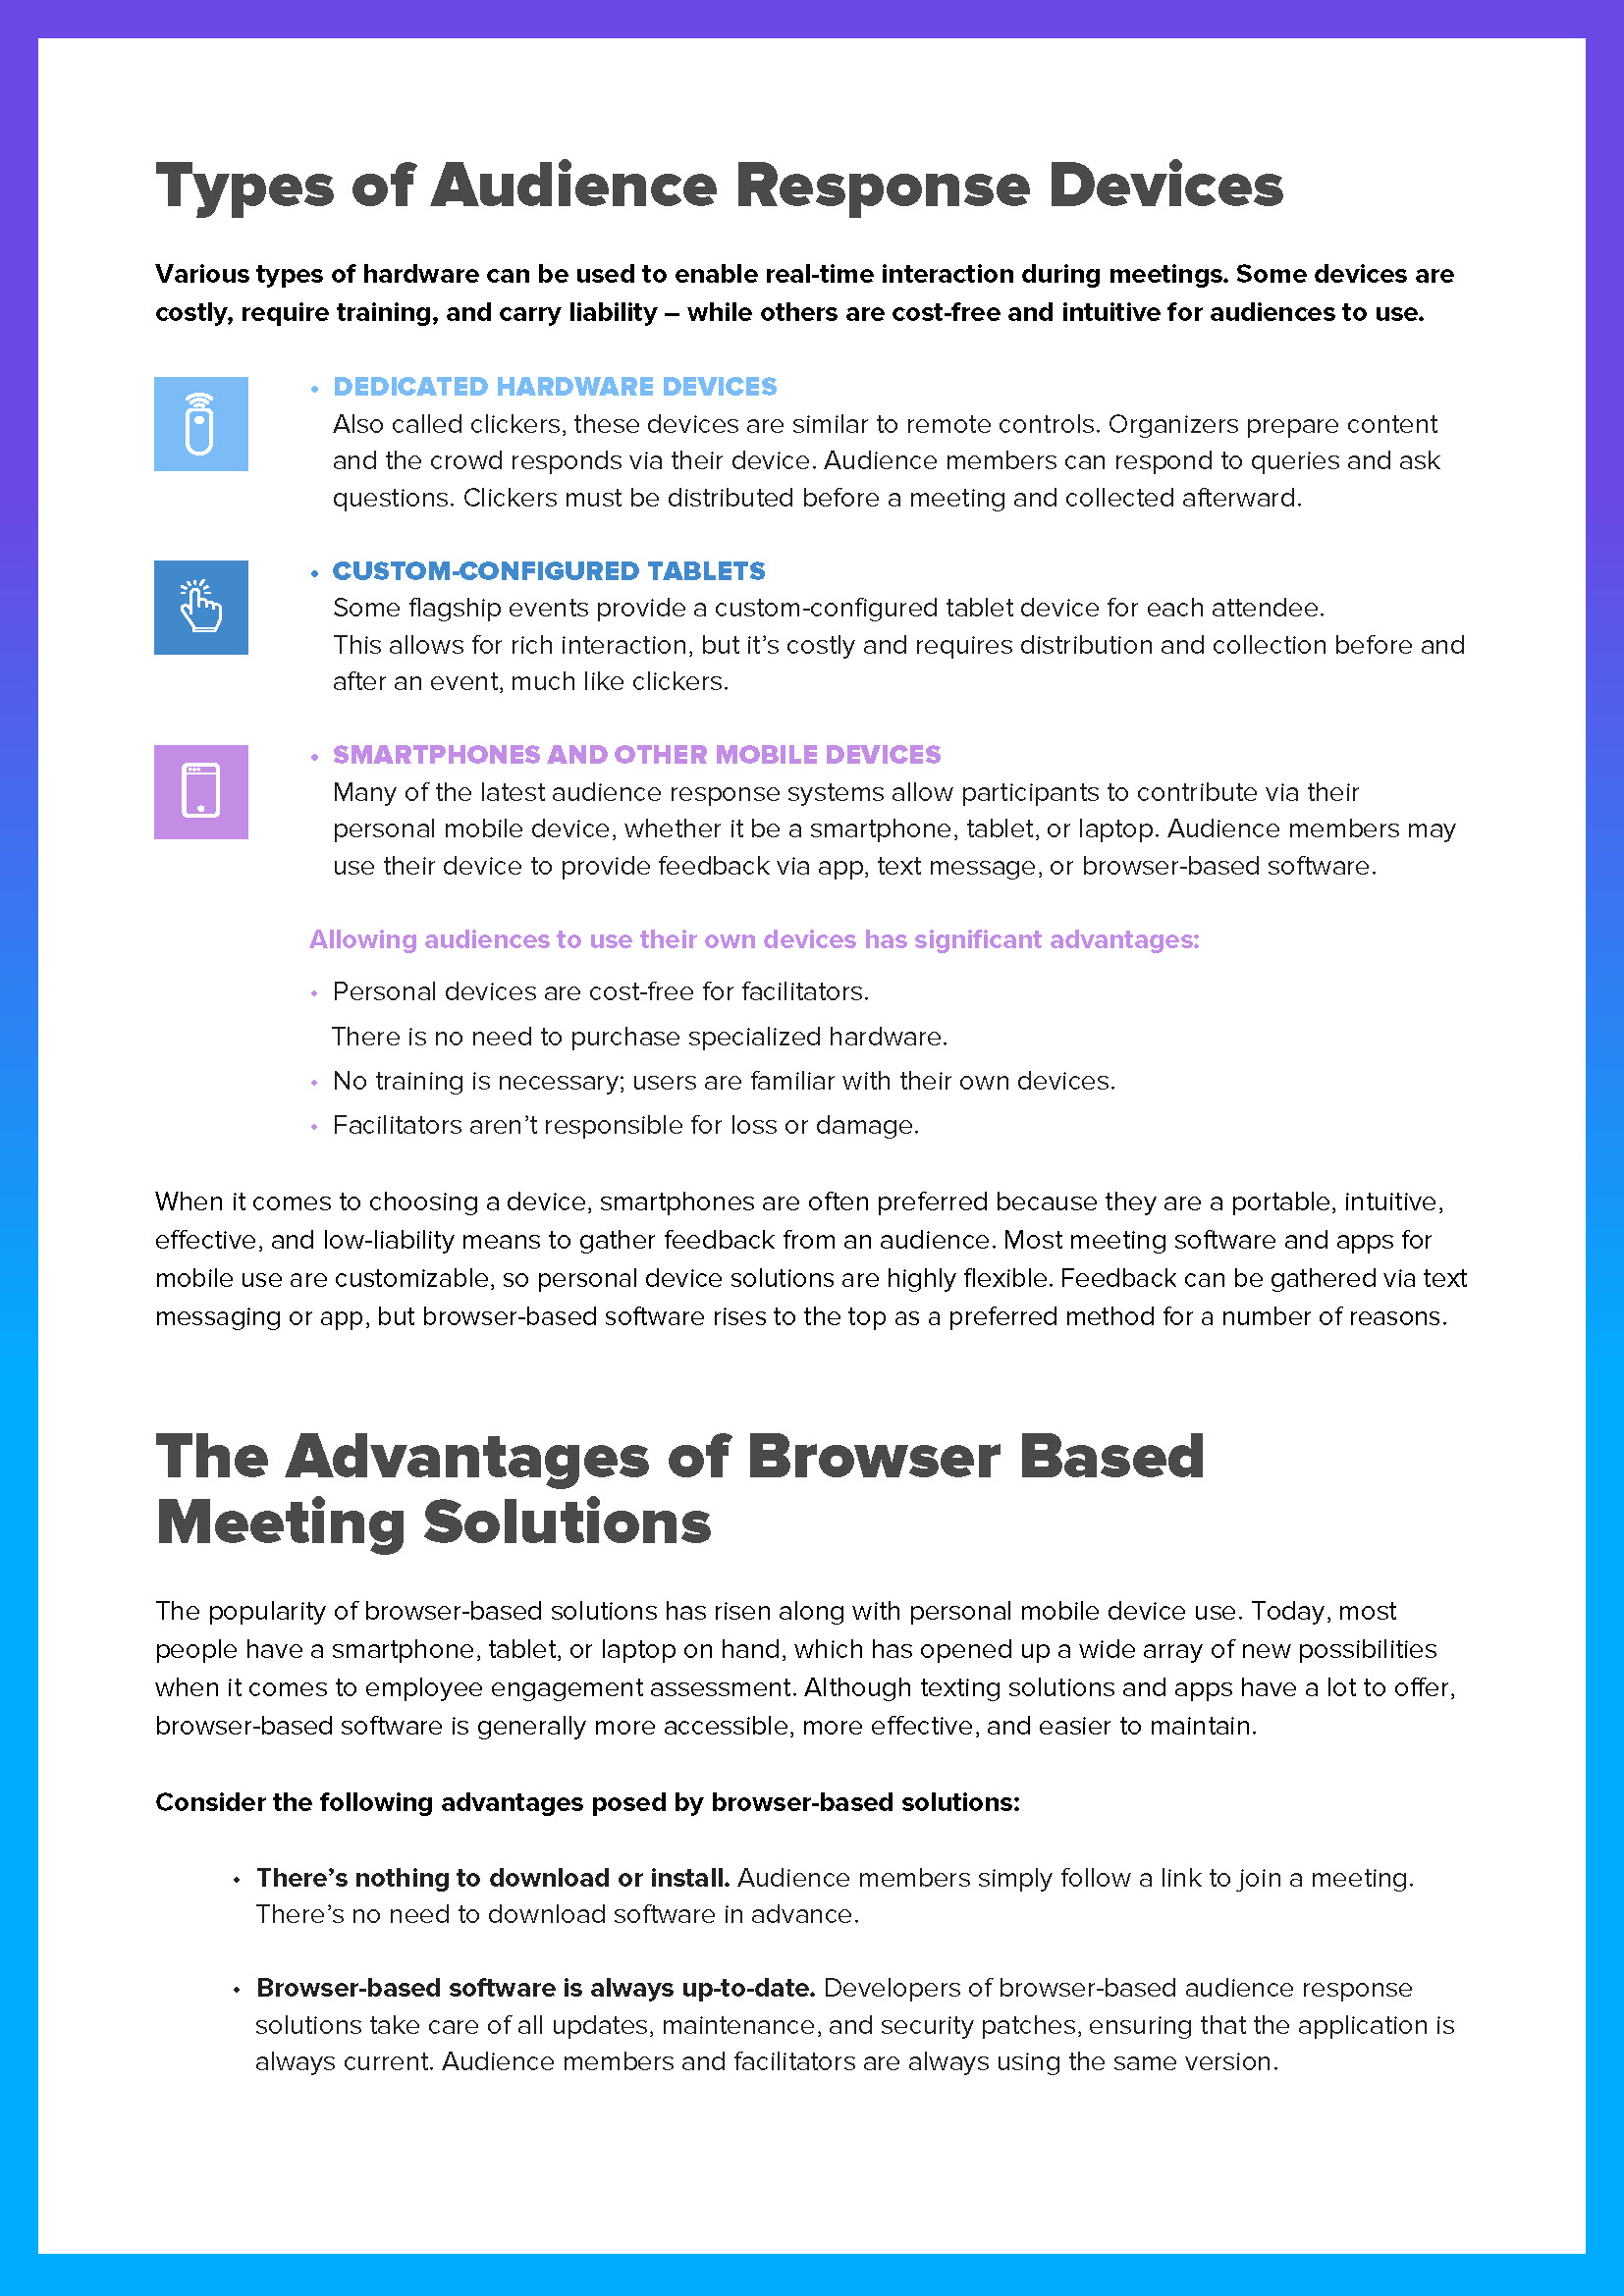 Enhancing Employee Engagement with Interactive Meeting Software_Page_06.jpg